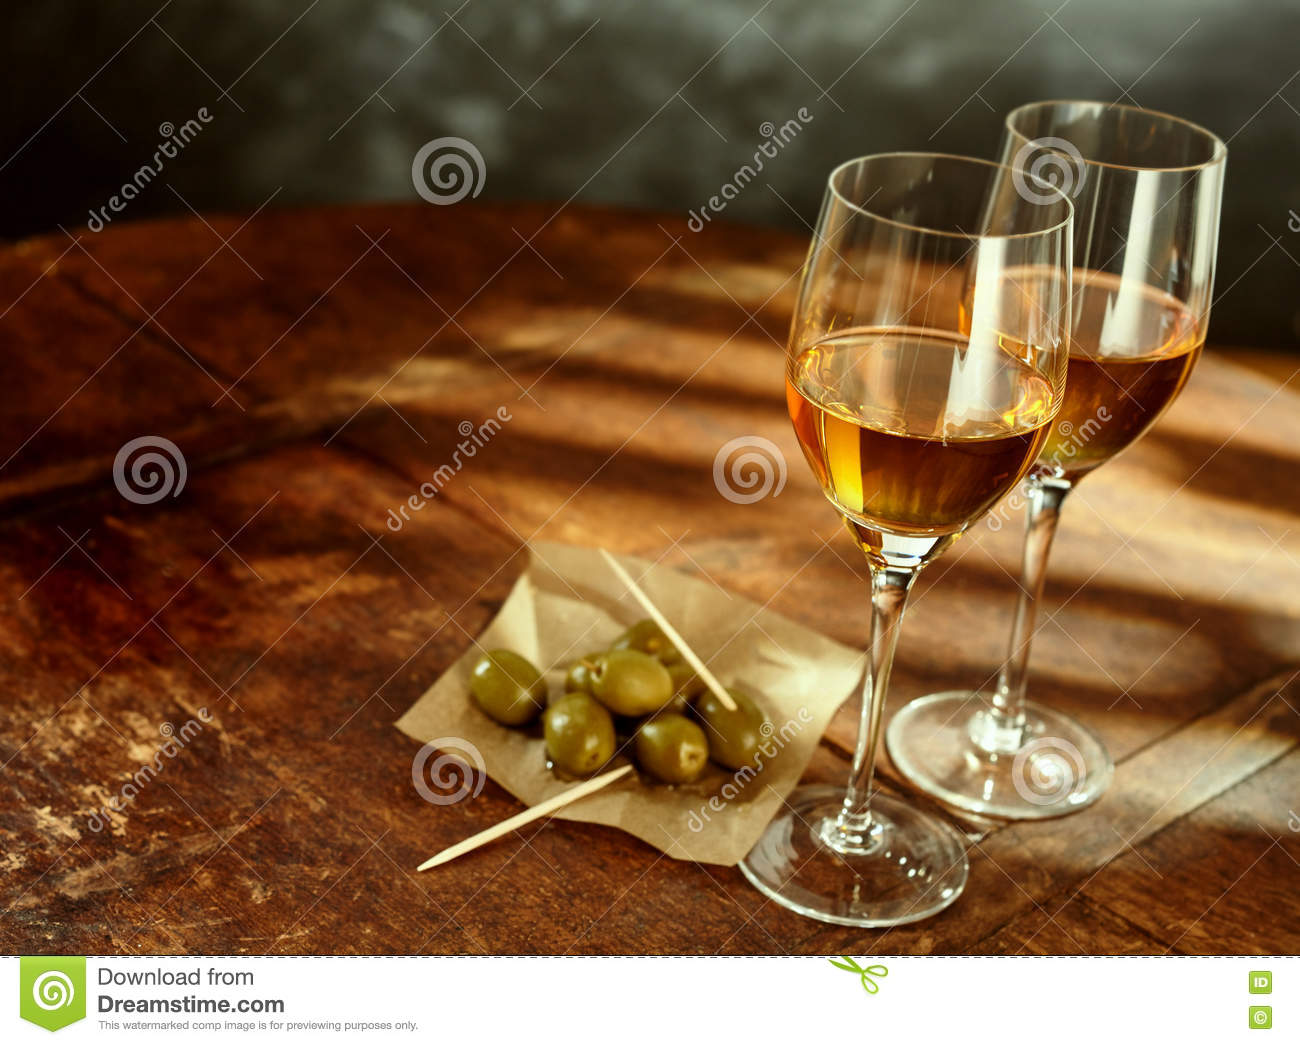 Glasses of Wine on Wood Table with Green Olives